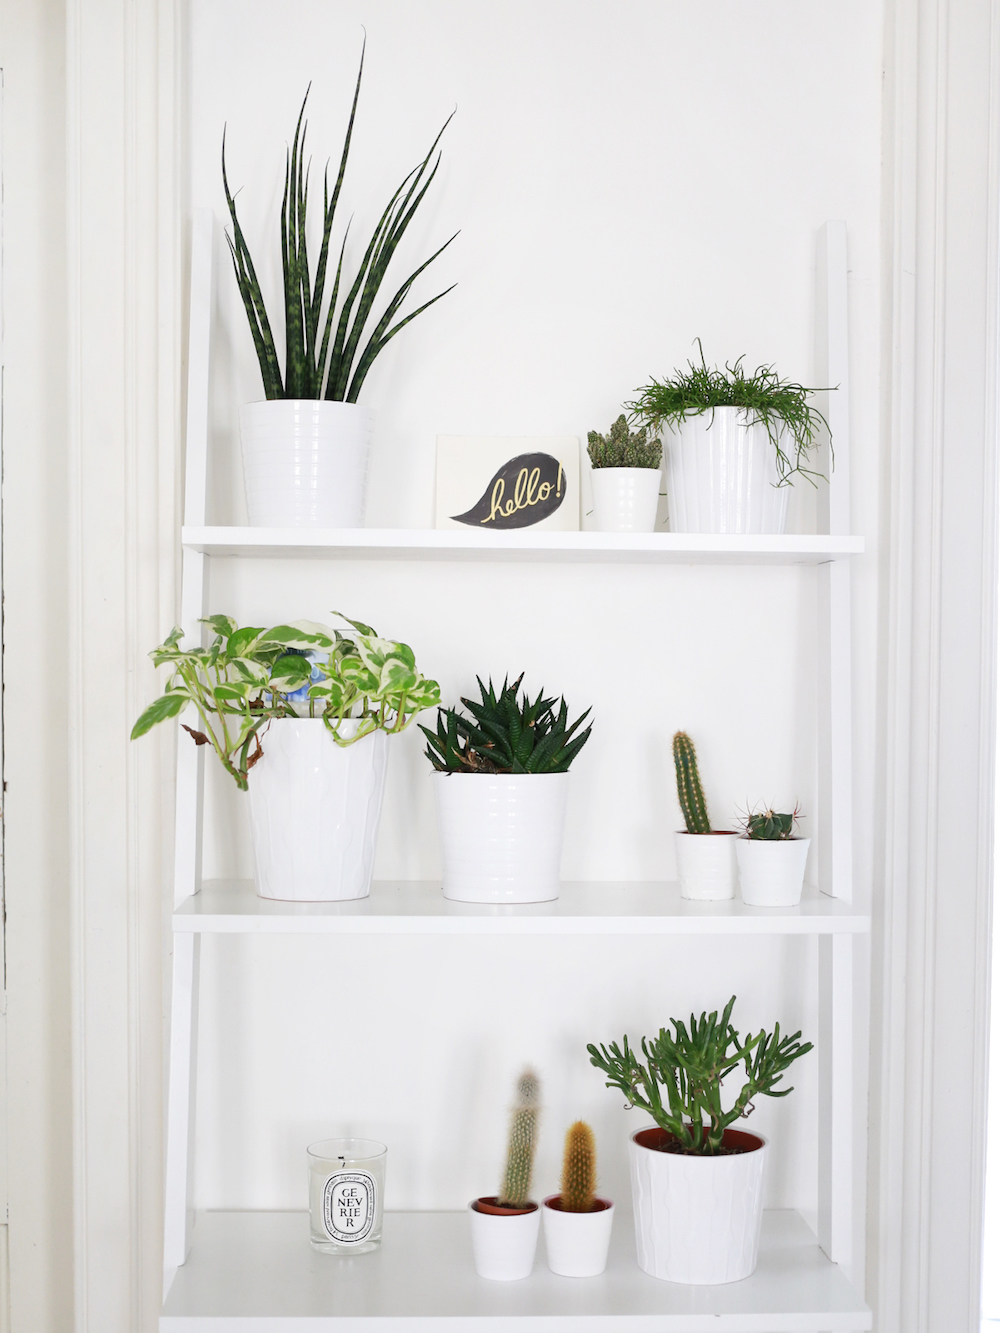 Plants in Kate La Vie's Apartment